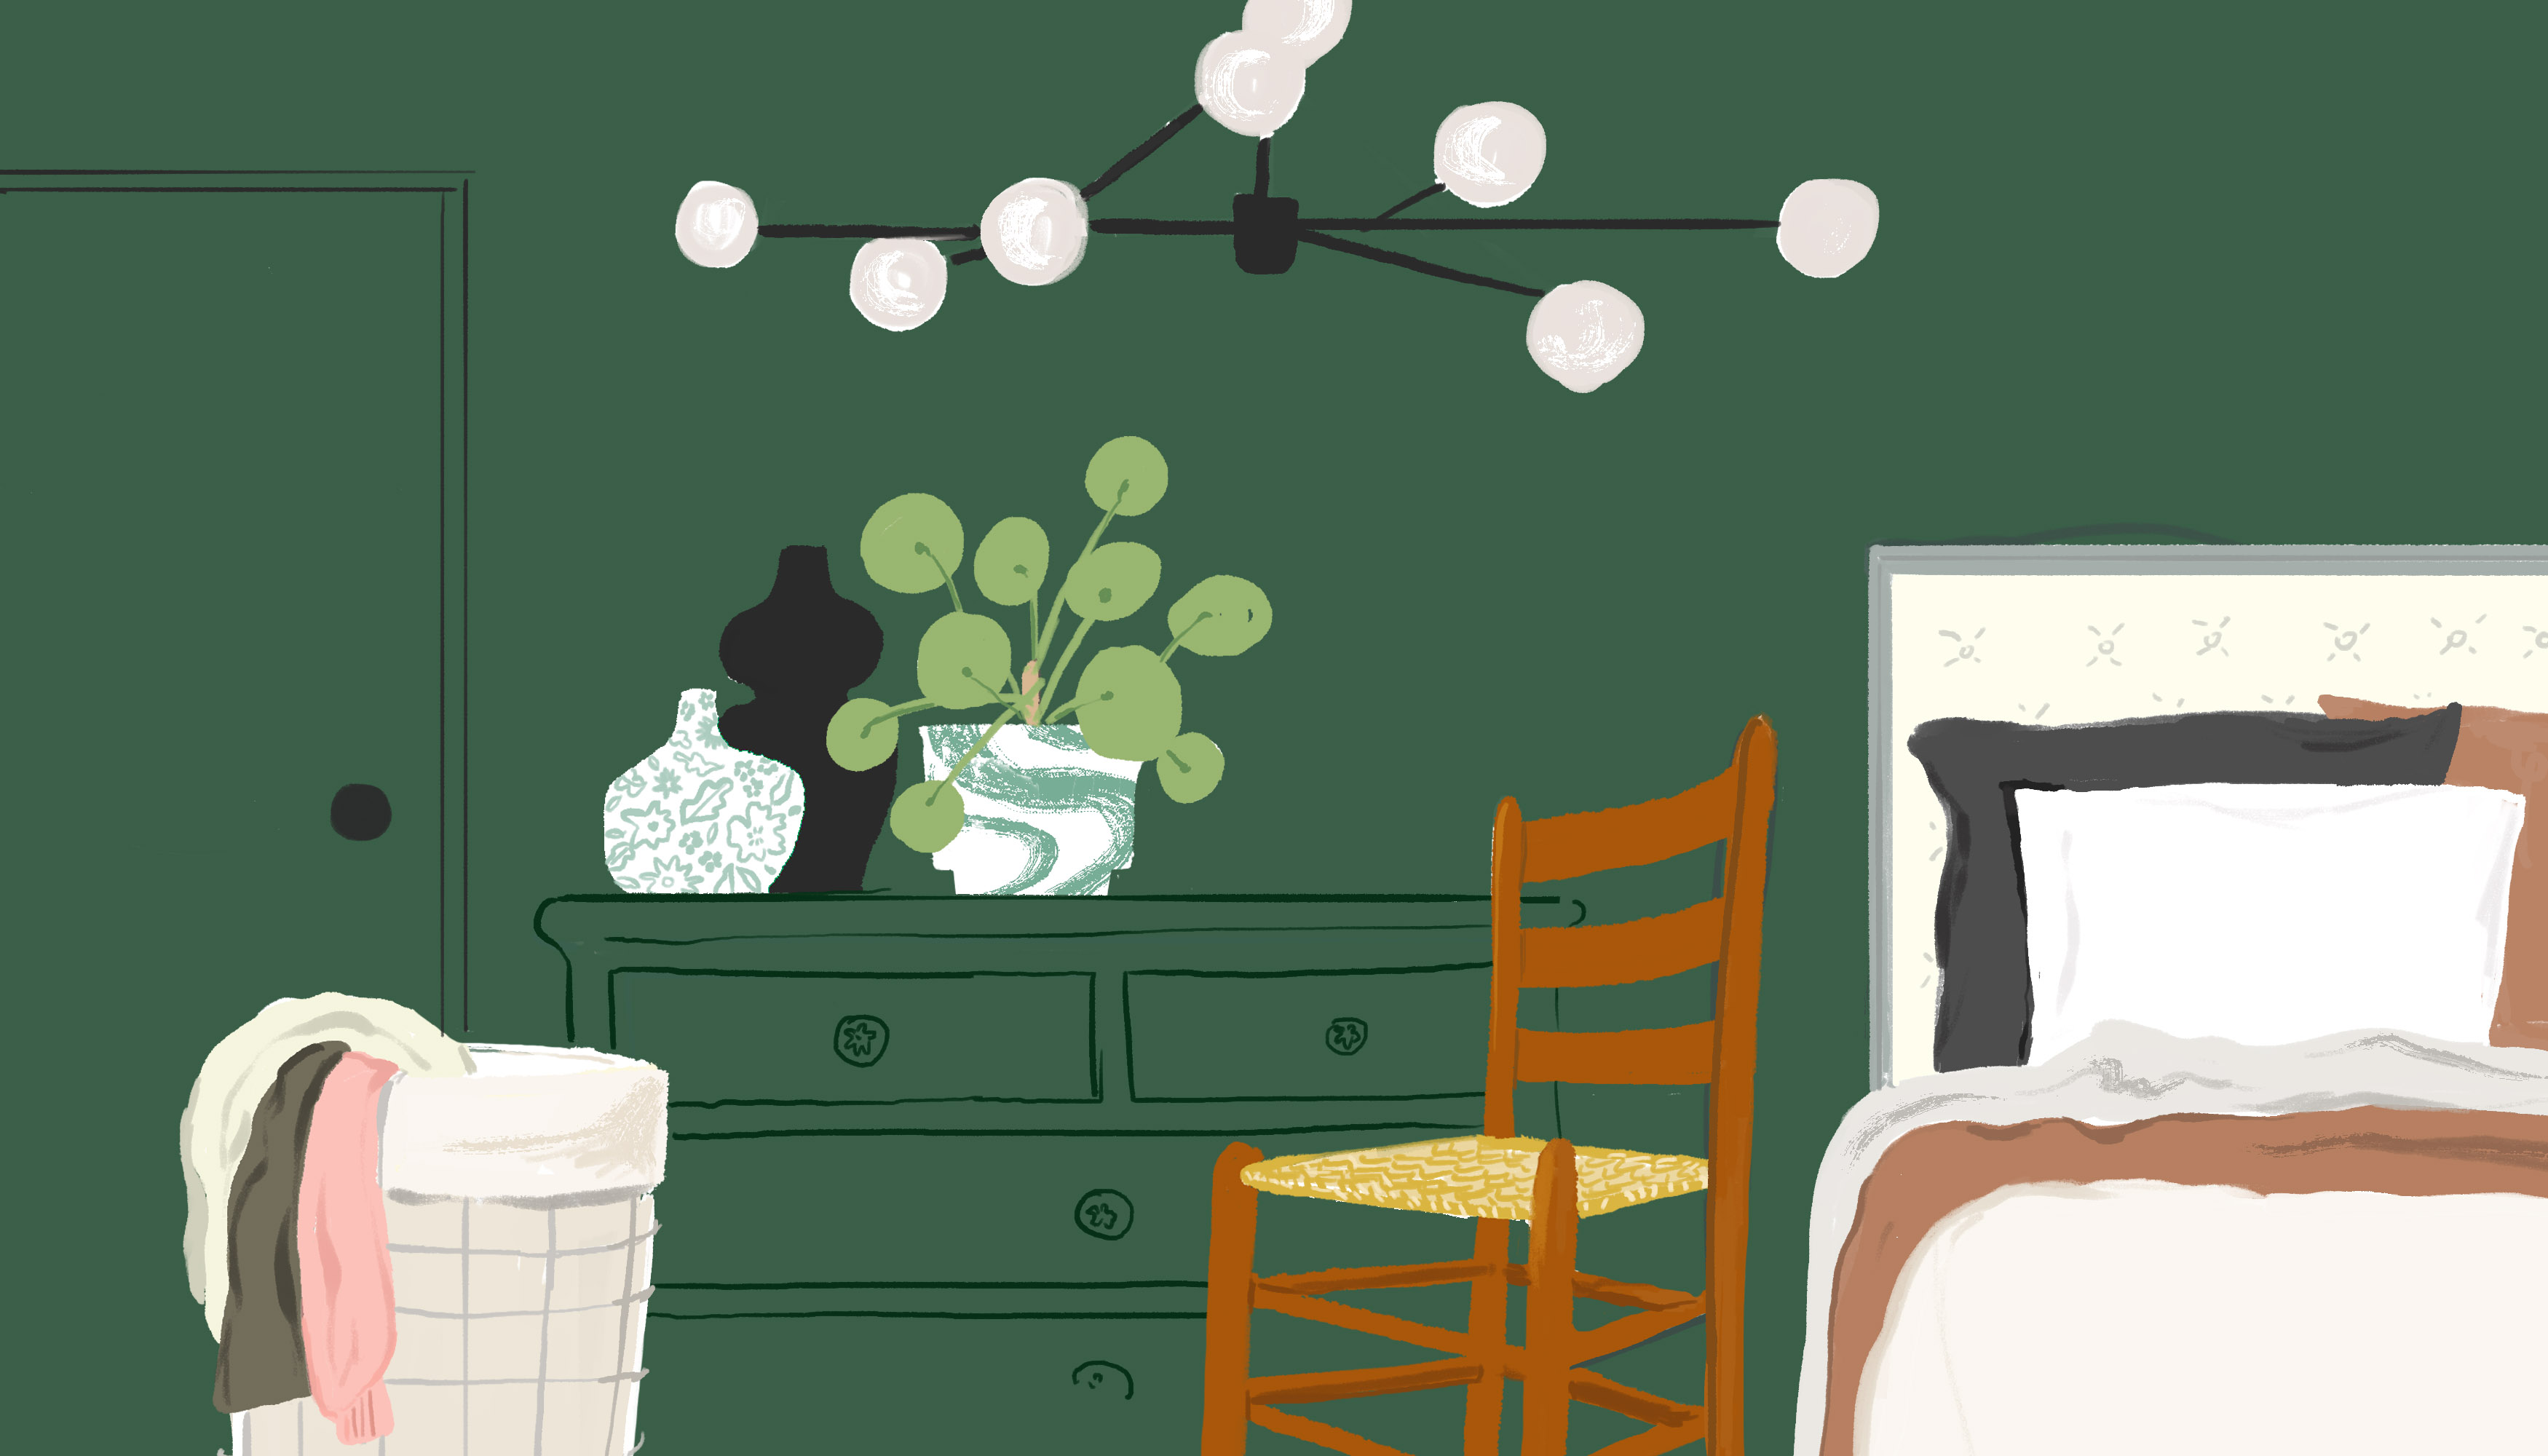 A wooden chair with a slatted back and woven seat sits in the middle of a bedroom scene. To the left of the chair is a dresser topped with plants and vases and an overflowing hamper. To the chair's right is a made bed. Illustration.